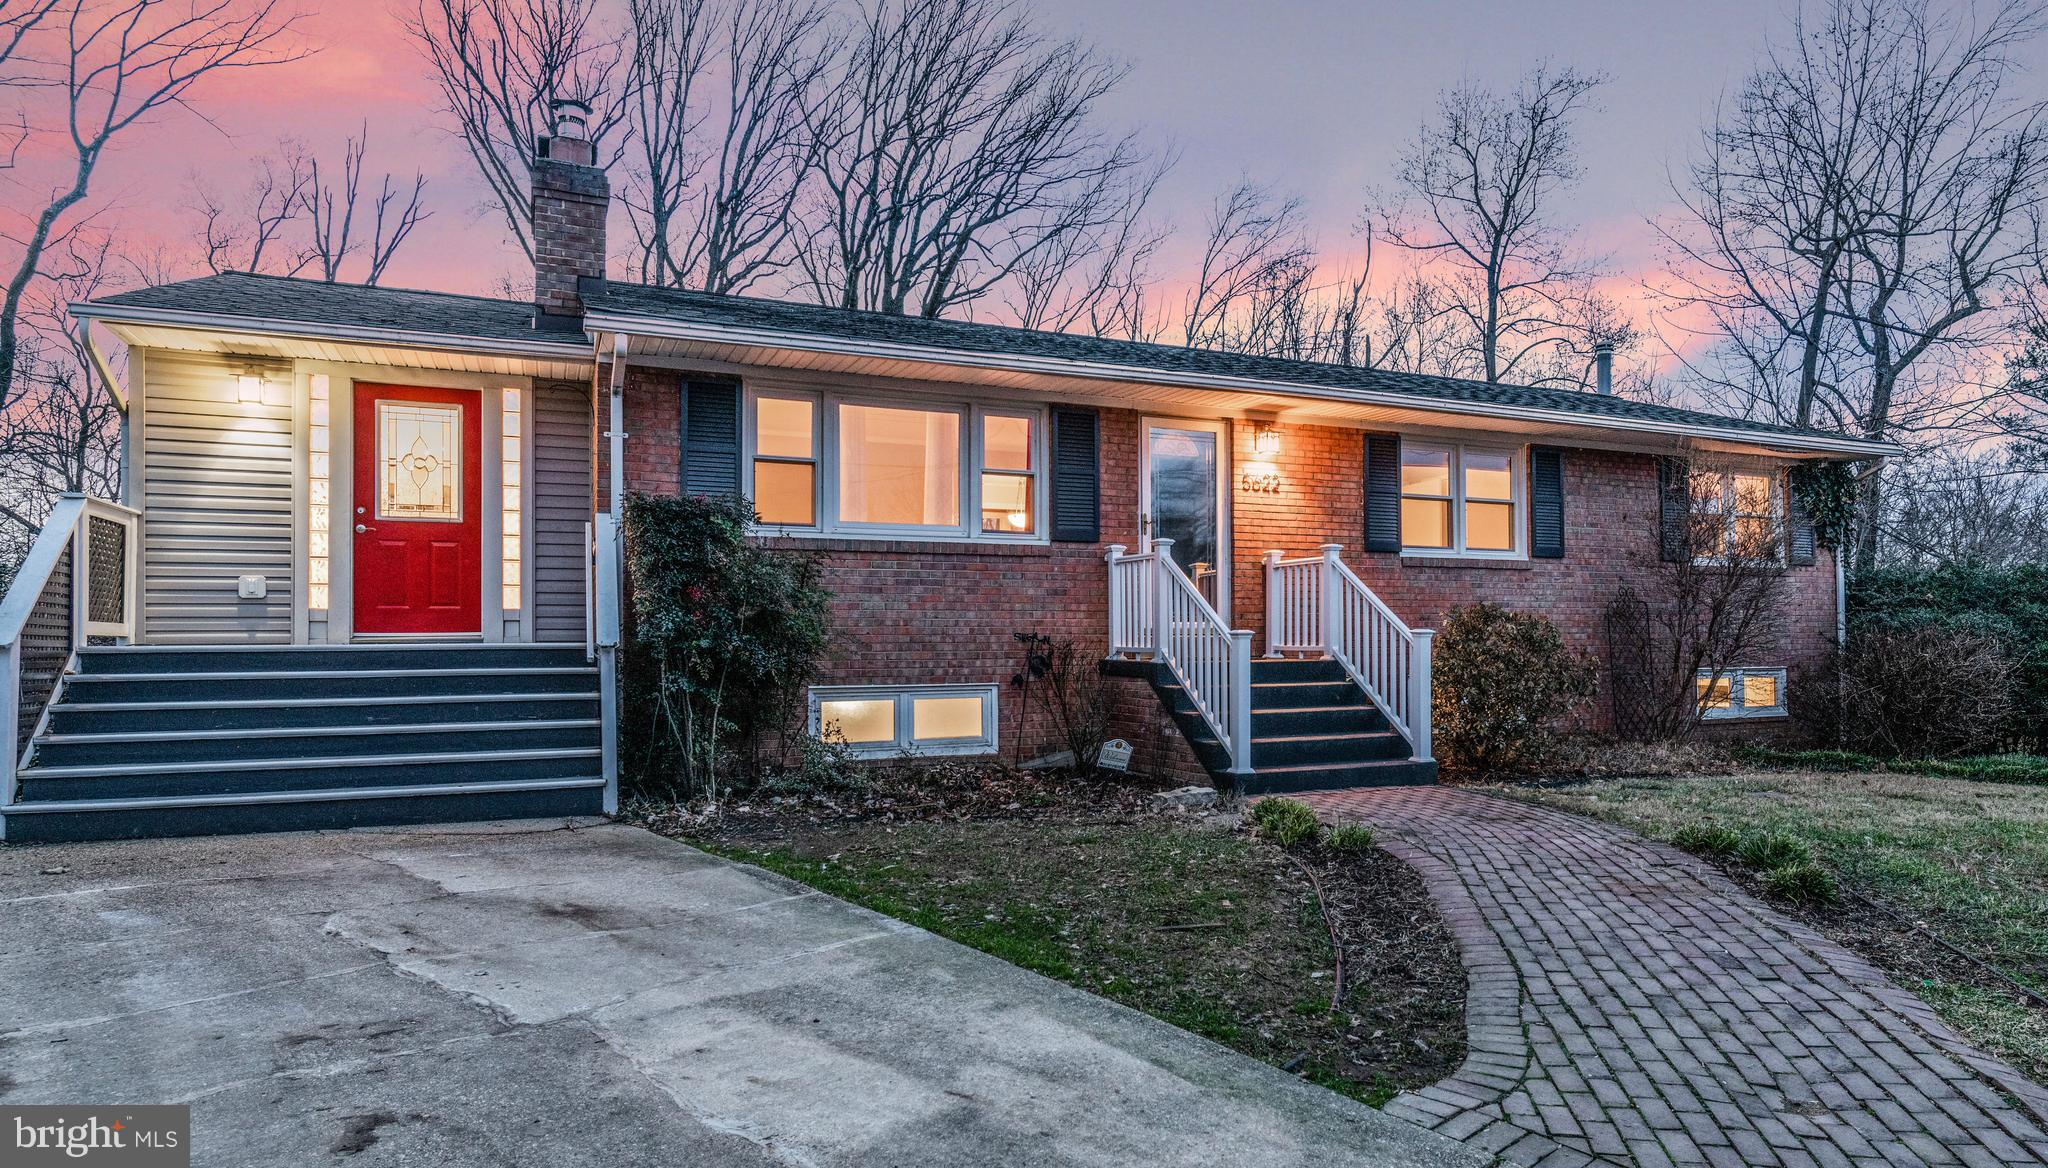 OFFER DEADLINE: TUESDAY JANUARY 15TH AT 3PM. Incredible 4BD/3BA single family home on cul-de-sac. Enlarged Master Bedroom and Kitchen. Bright formal Living Room with gas fireplace. Spacious Dining Room with bay window. Hardwood floors. Updated baths. Gourmet kitchen with stainless steal and gas cooking. Skylights. Huge Basement Rec Room with brick fireplace and walk-out to large patio with fire-pit, extensive privacy, landscaping, hot tub, and pond. Large lot in prime location near metro, bus, schools and Beltway!